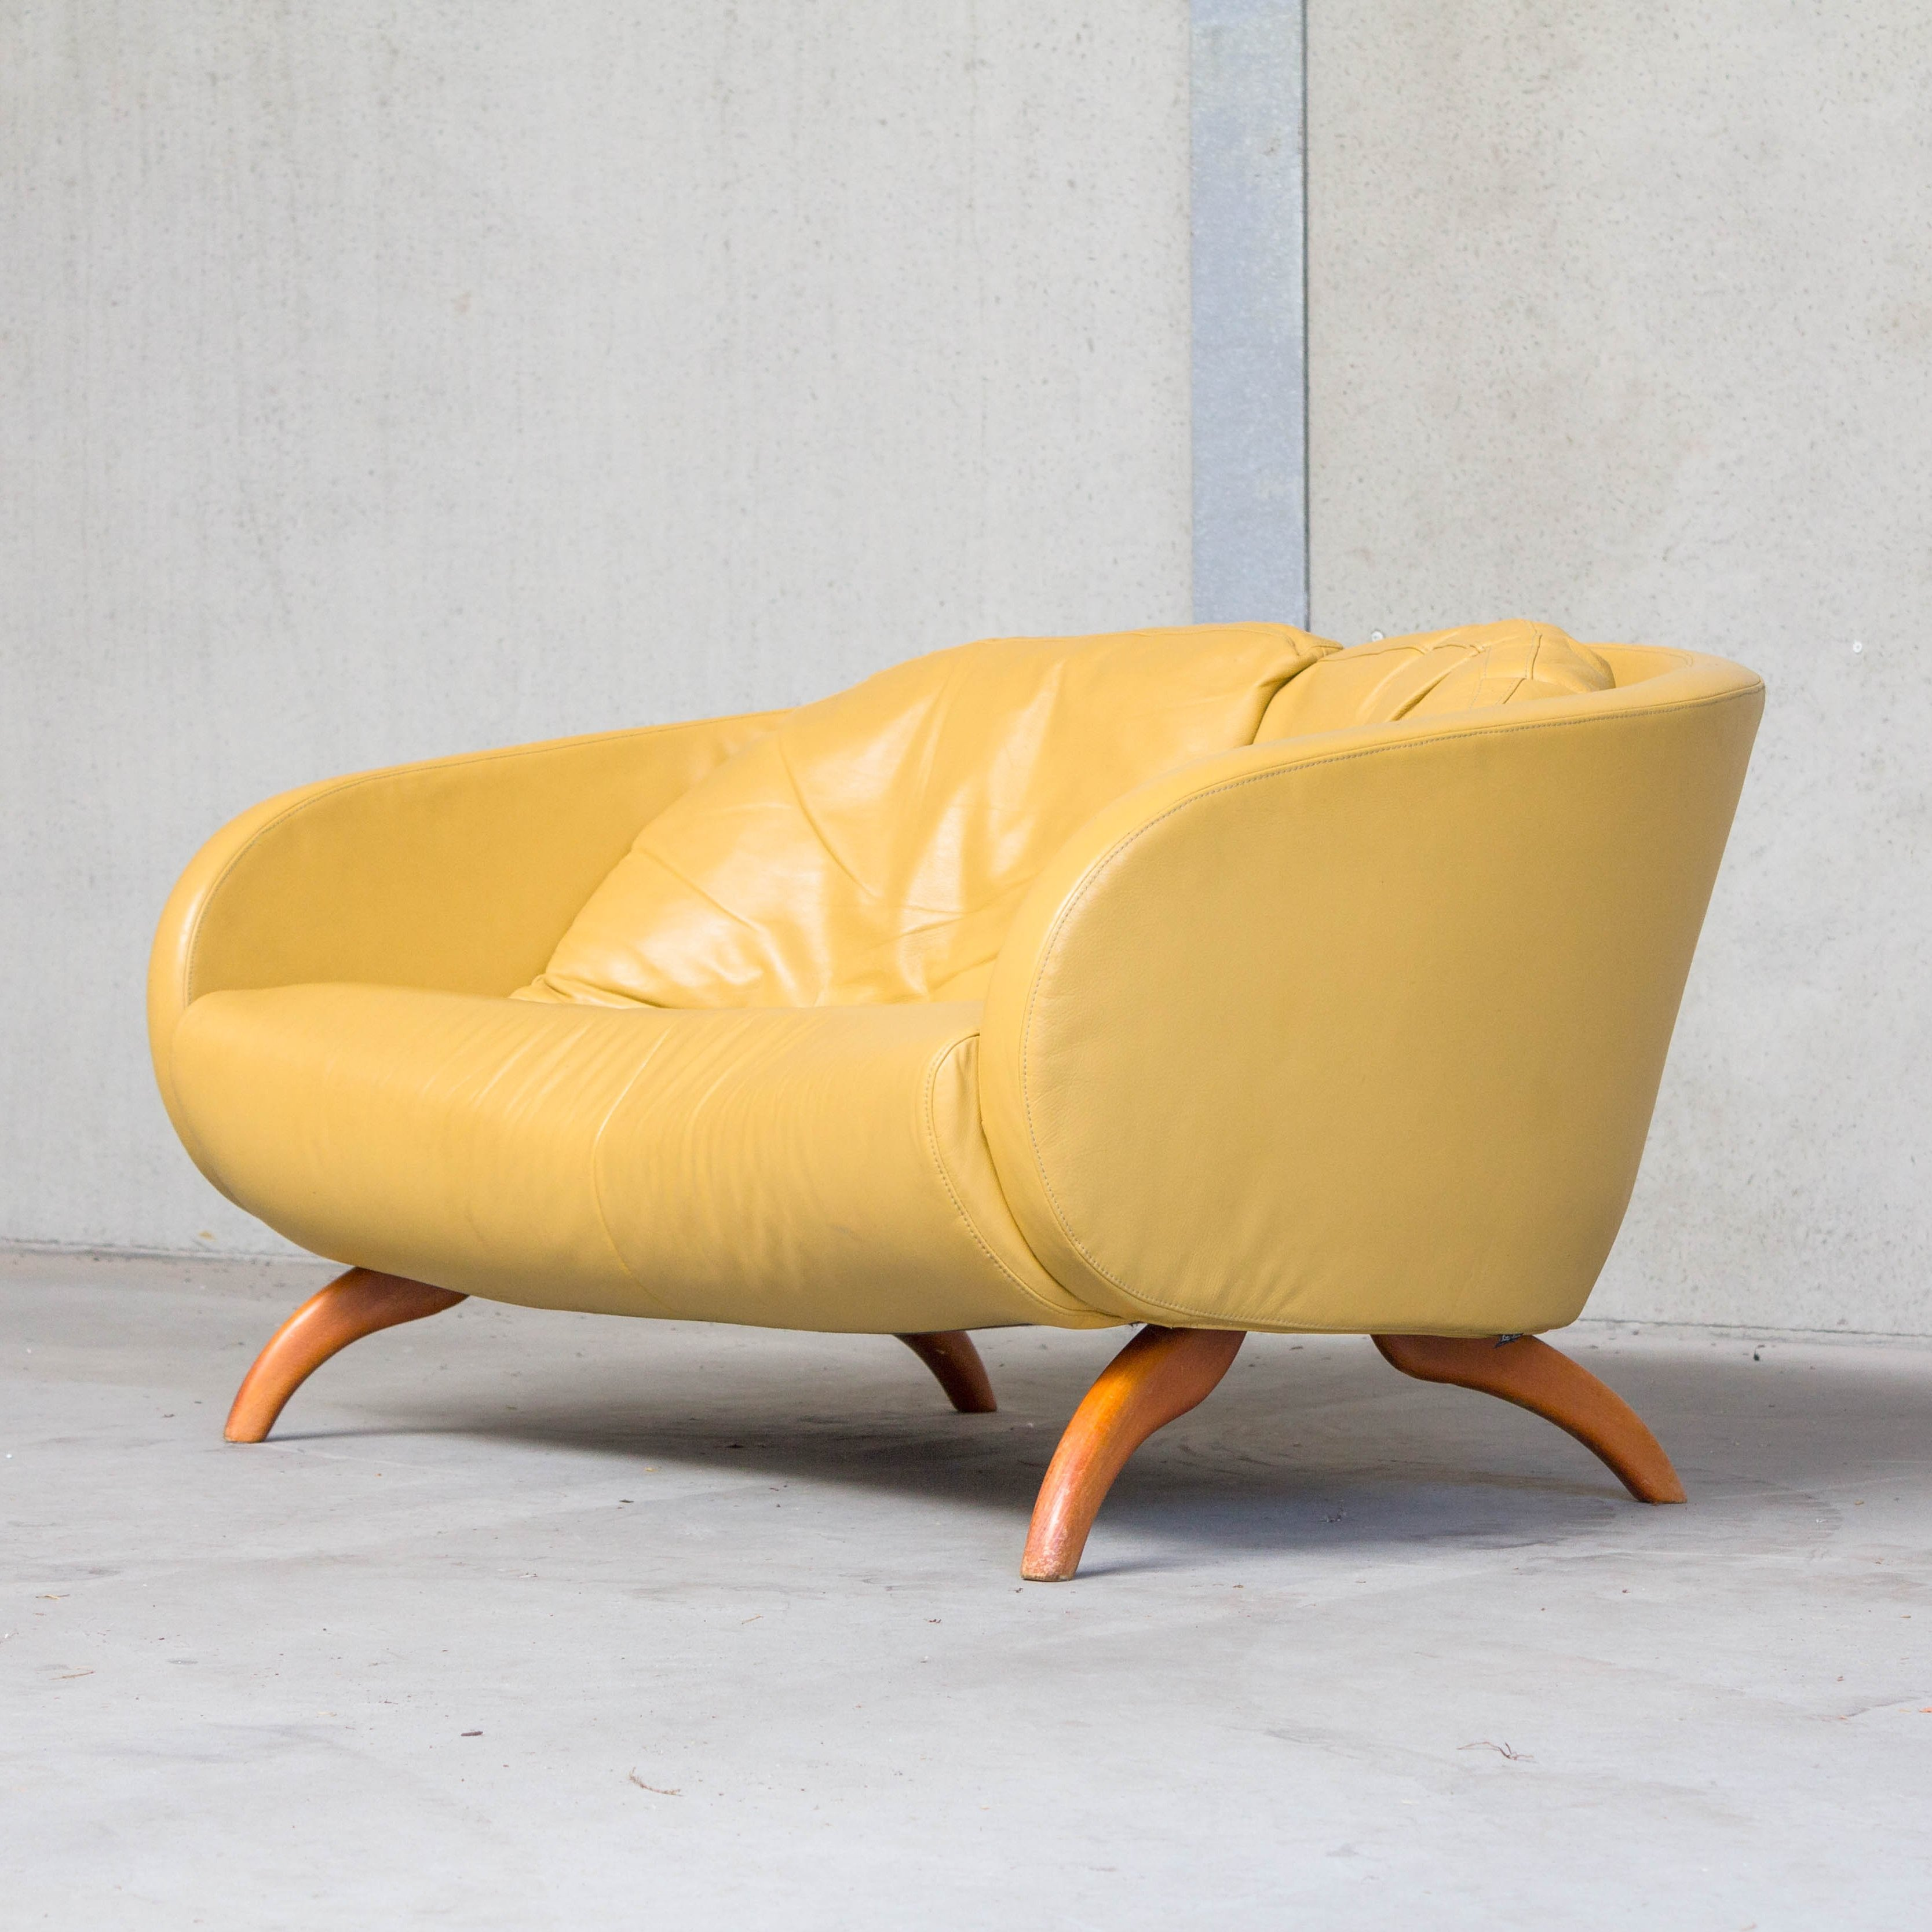 - Yellow Leather Sofa By Sitting Vision, The Netherlands #80819